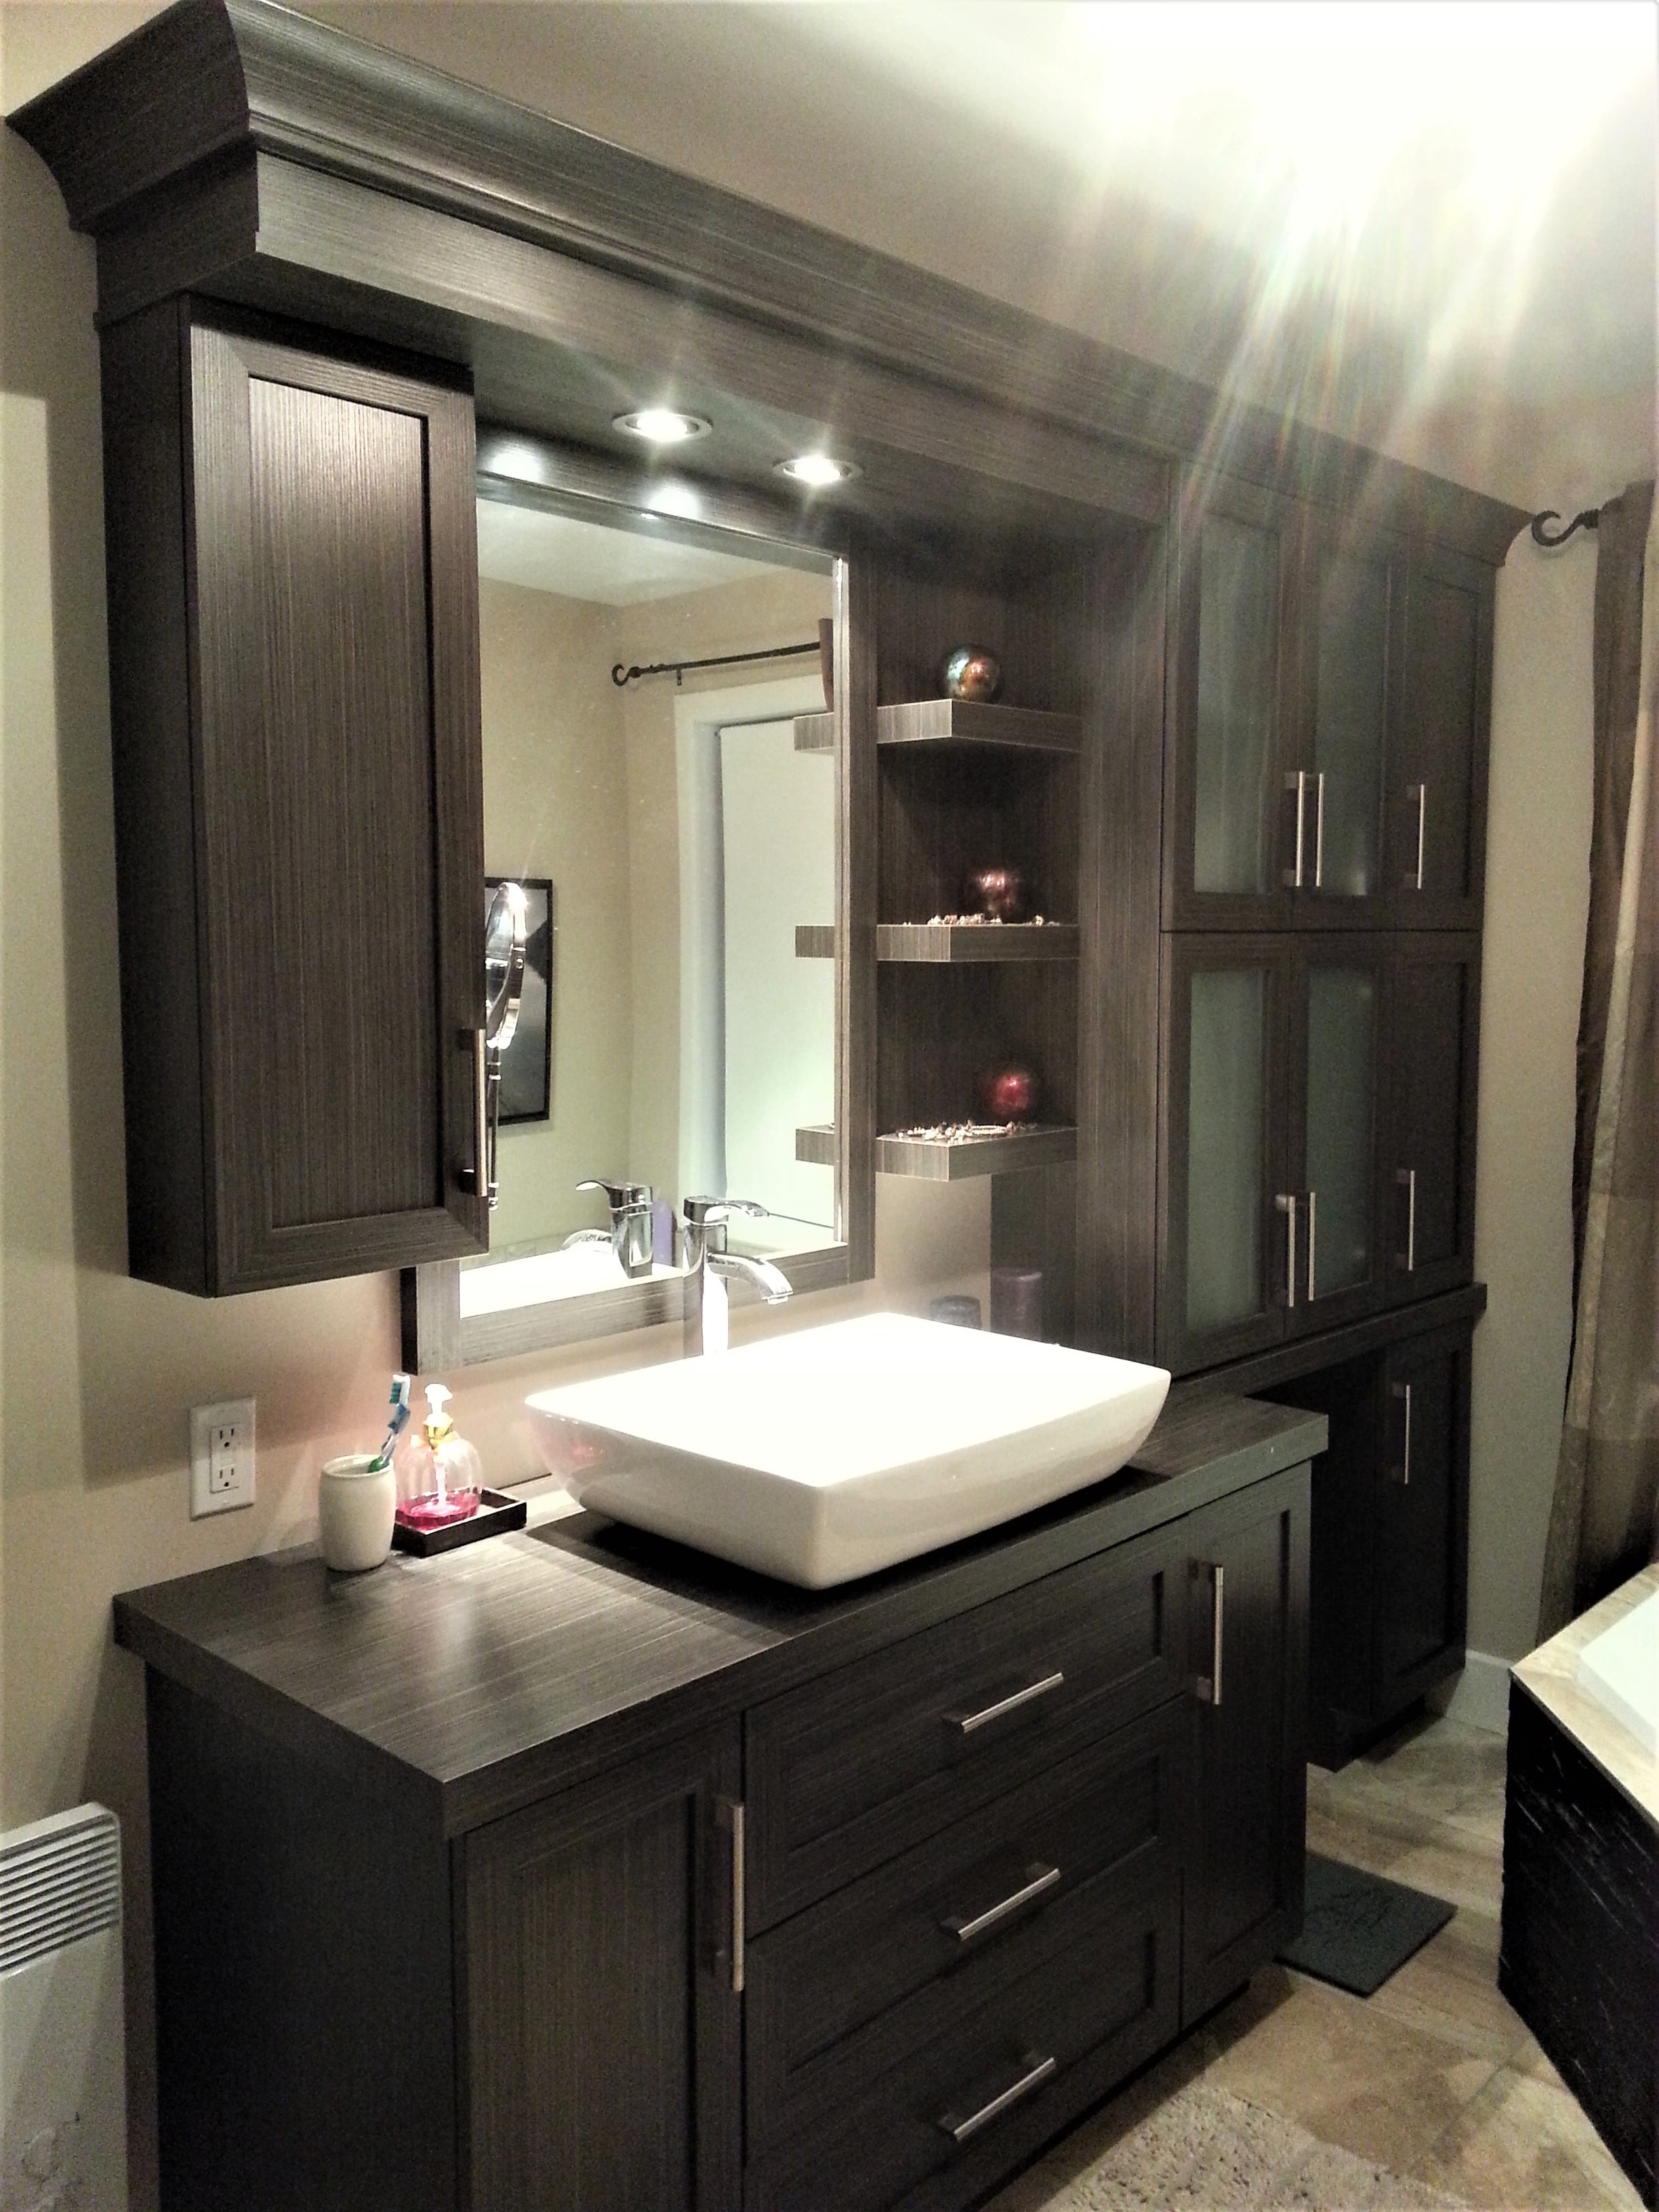 vanit de salle de bain farnham bromont et granby. Black Bedroom Furniture Sets. Home Design Ideas